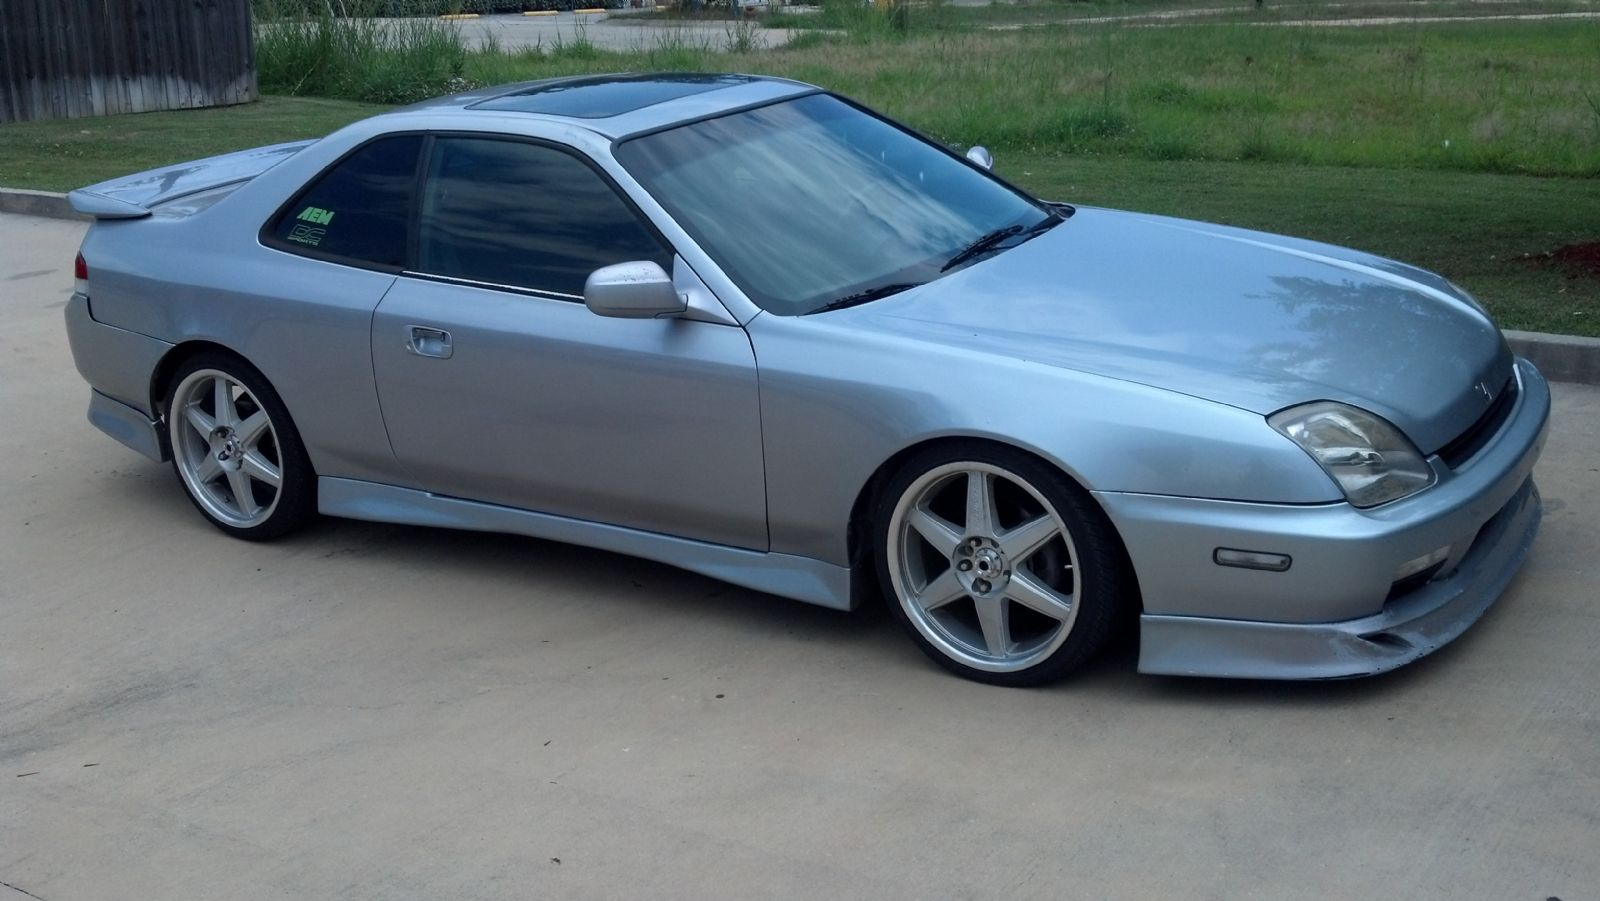 1998 honda prelude for sale new orleans louisiana. Black Bedroom Furniture Sets. Home Design Ideas